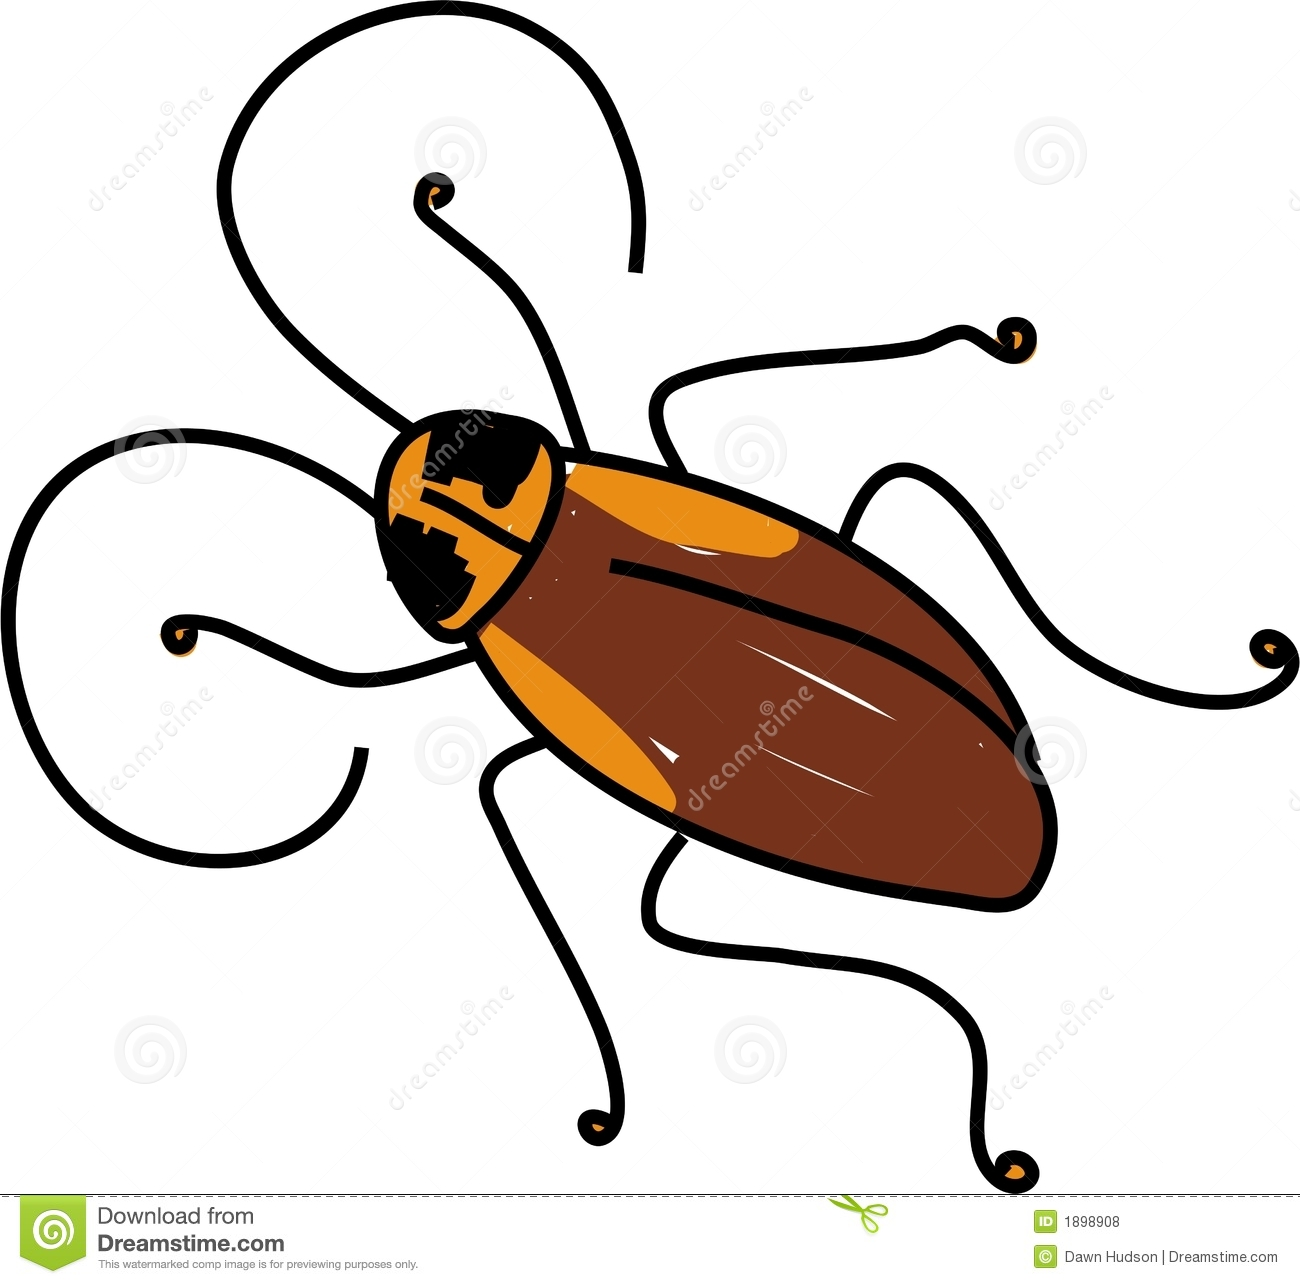 Cockroach clipart #3, Download drawings